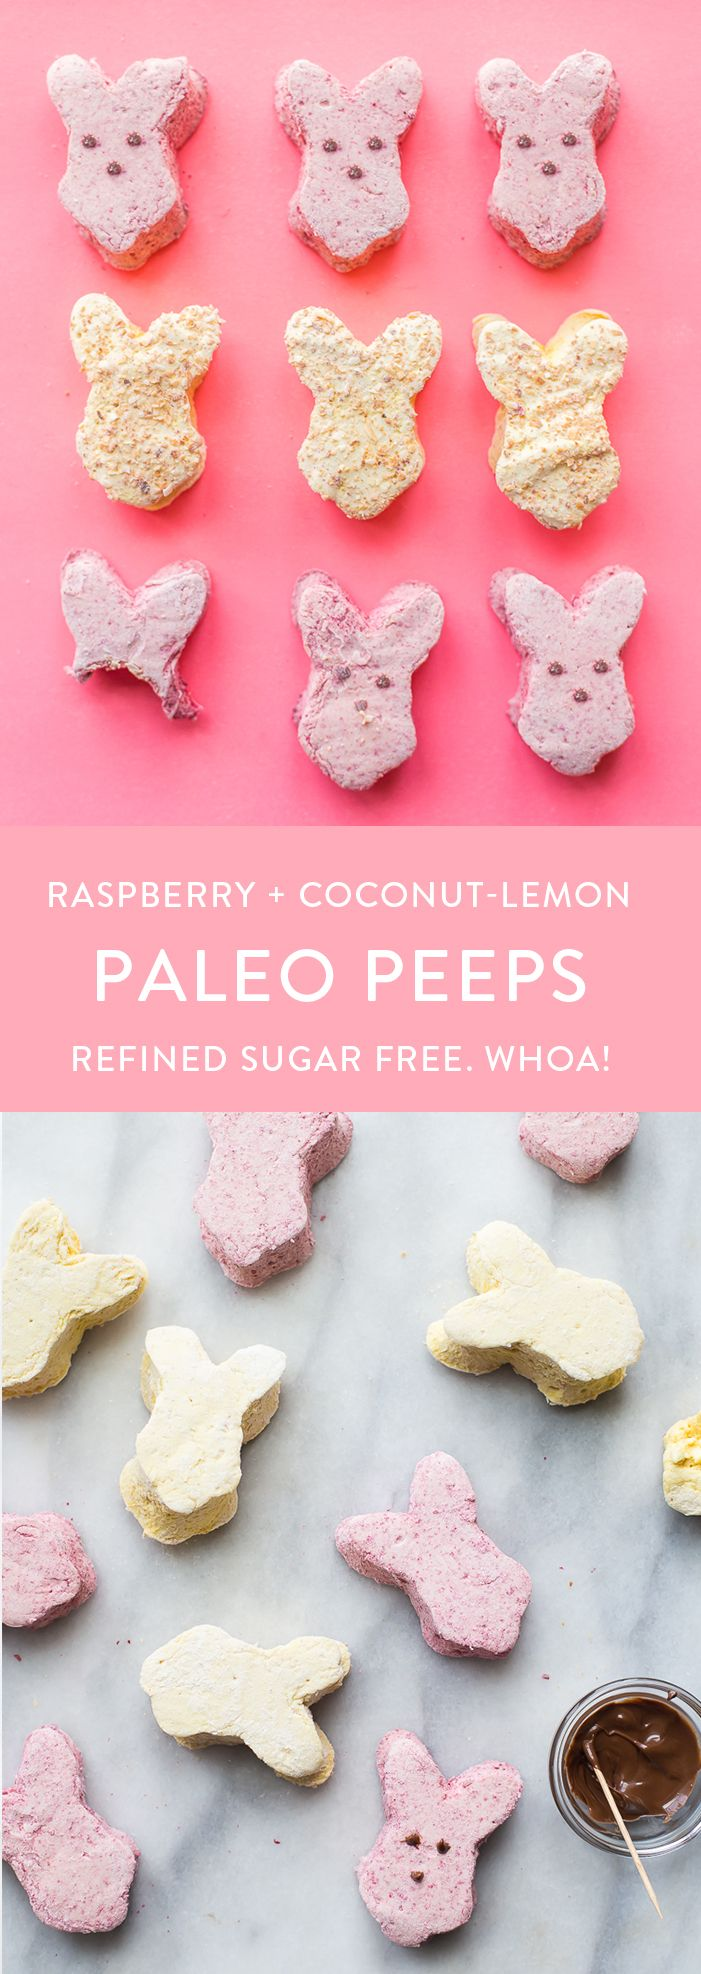 These paleo peeps are the perfect paleo Easter candy. Made from homemade raspberry paleo marshmallows and toasted coconut lemon paleo marshmallows, you'll be shocked at how similar they are to the traditional treat, but made only with healthy ingredients. A paleo Easter staple! Or cut them into cubes for an anytime paleo dessert.